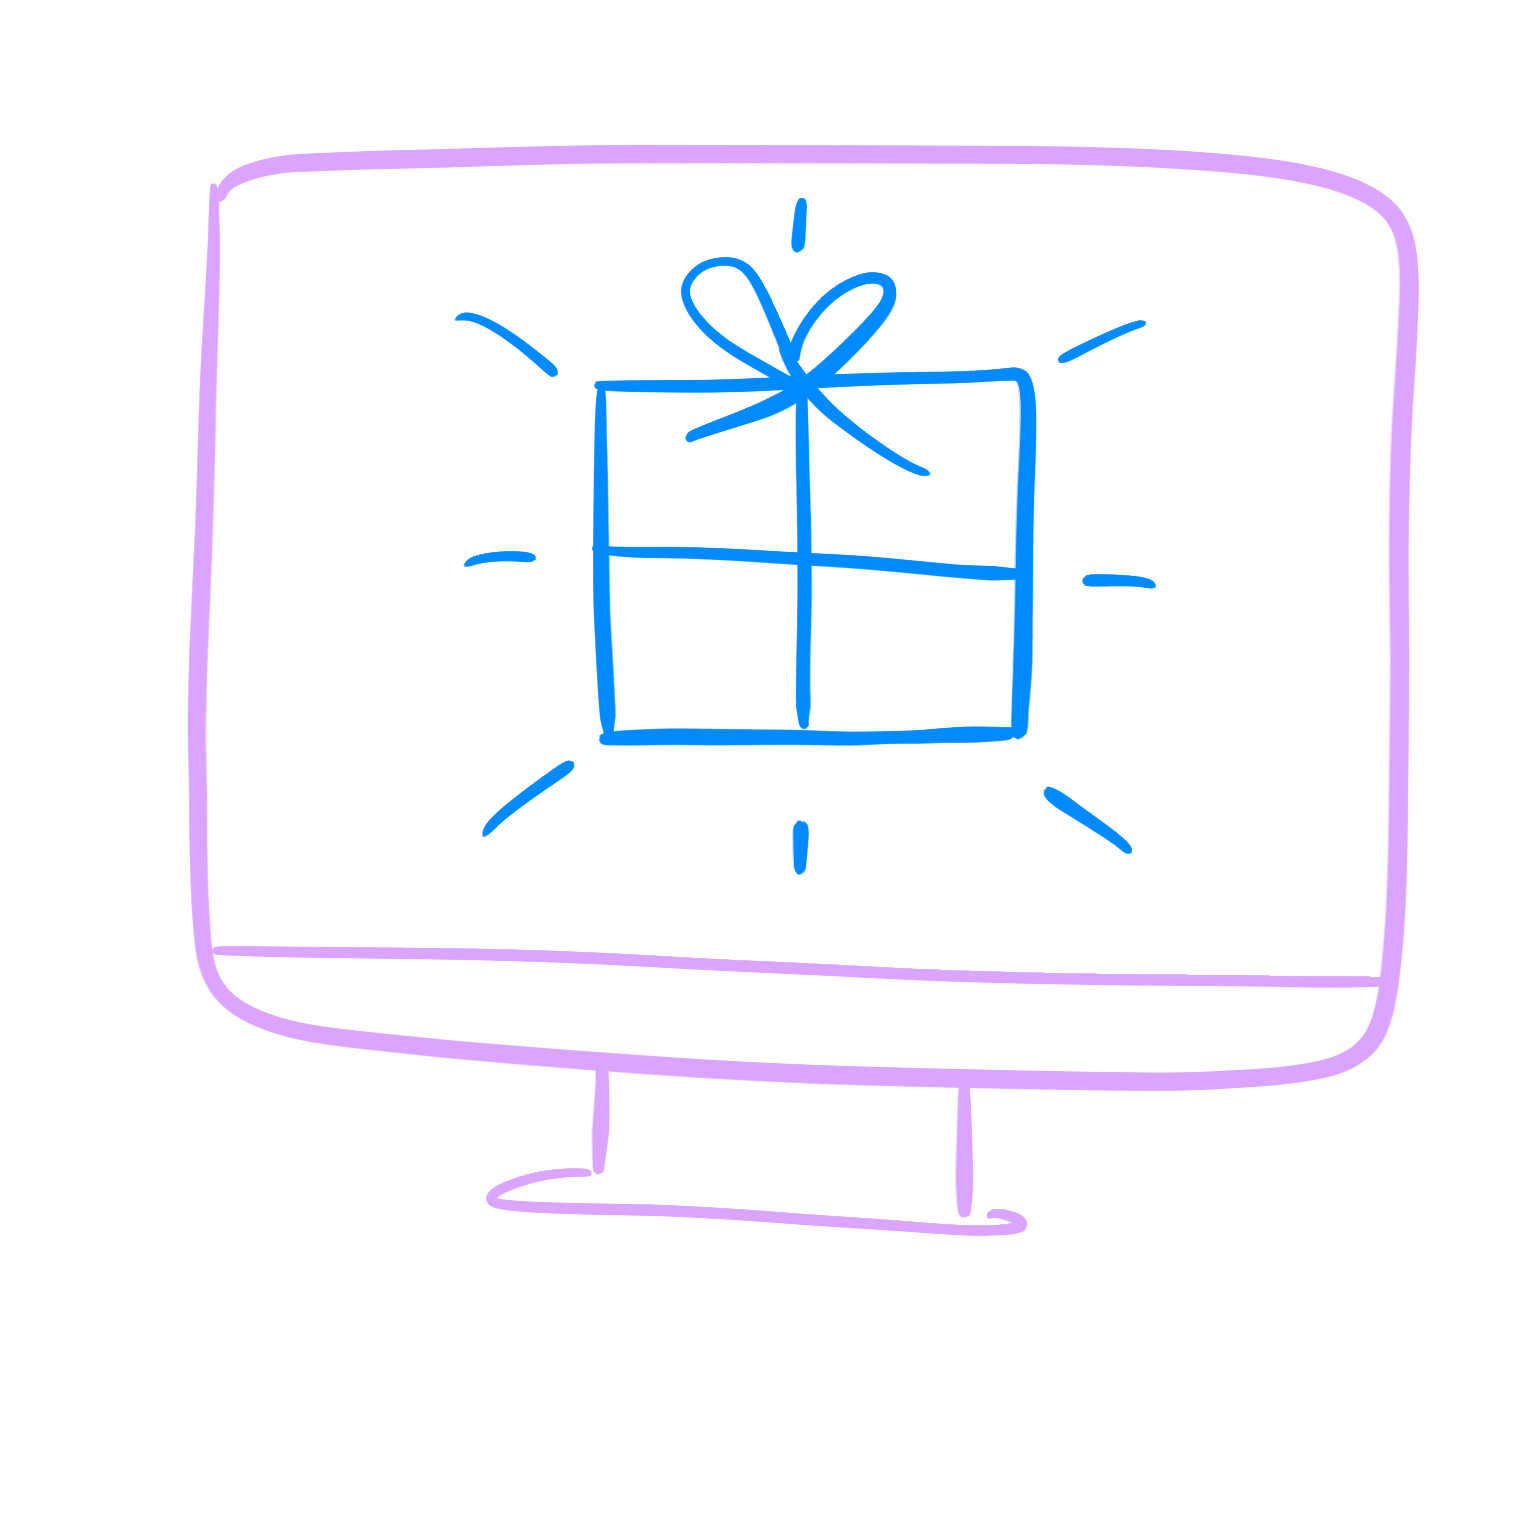 An illustration of a computer with a gift on the screen, showing the product that someone has created.